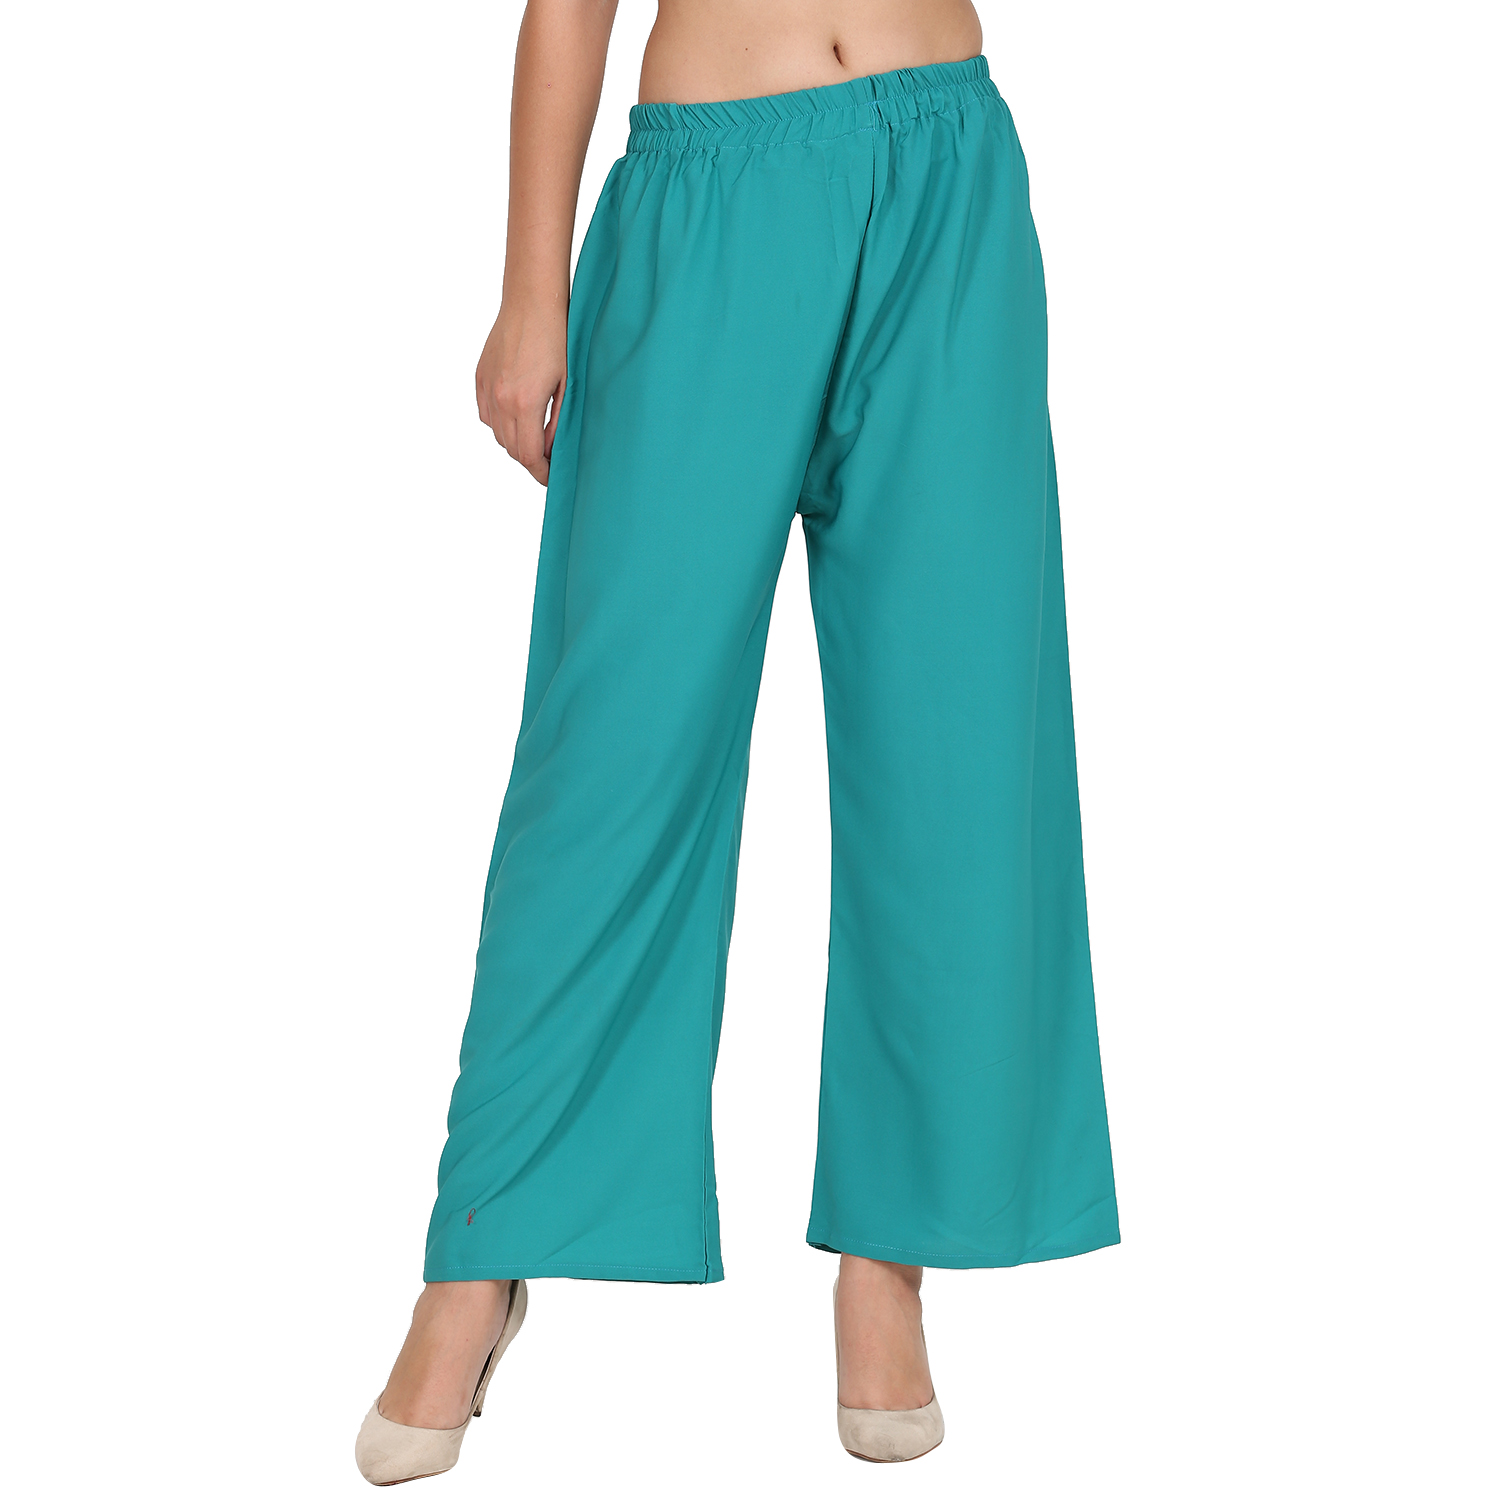 Florence Teal Crepe Plain Stitched Palazzo